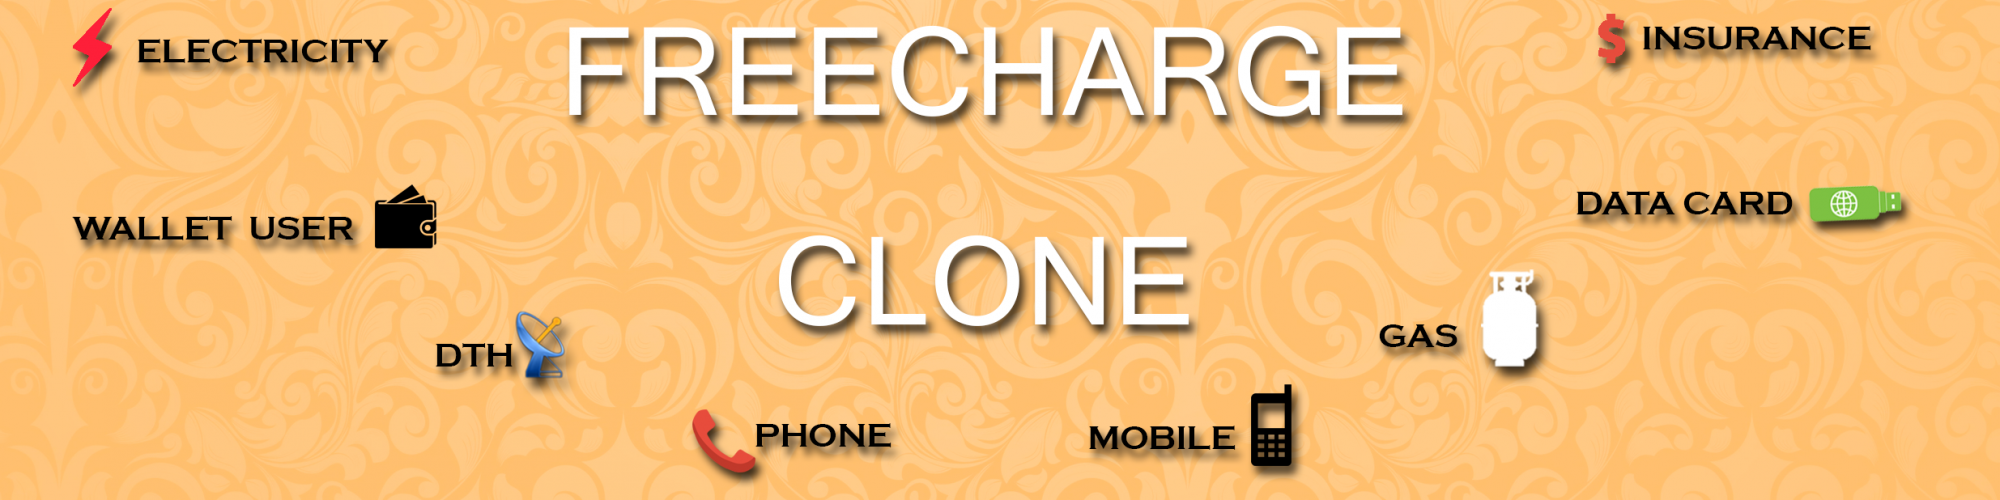 doditsolutions-freecharge-clone-banner